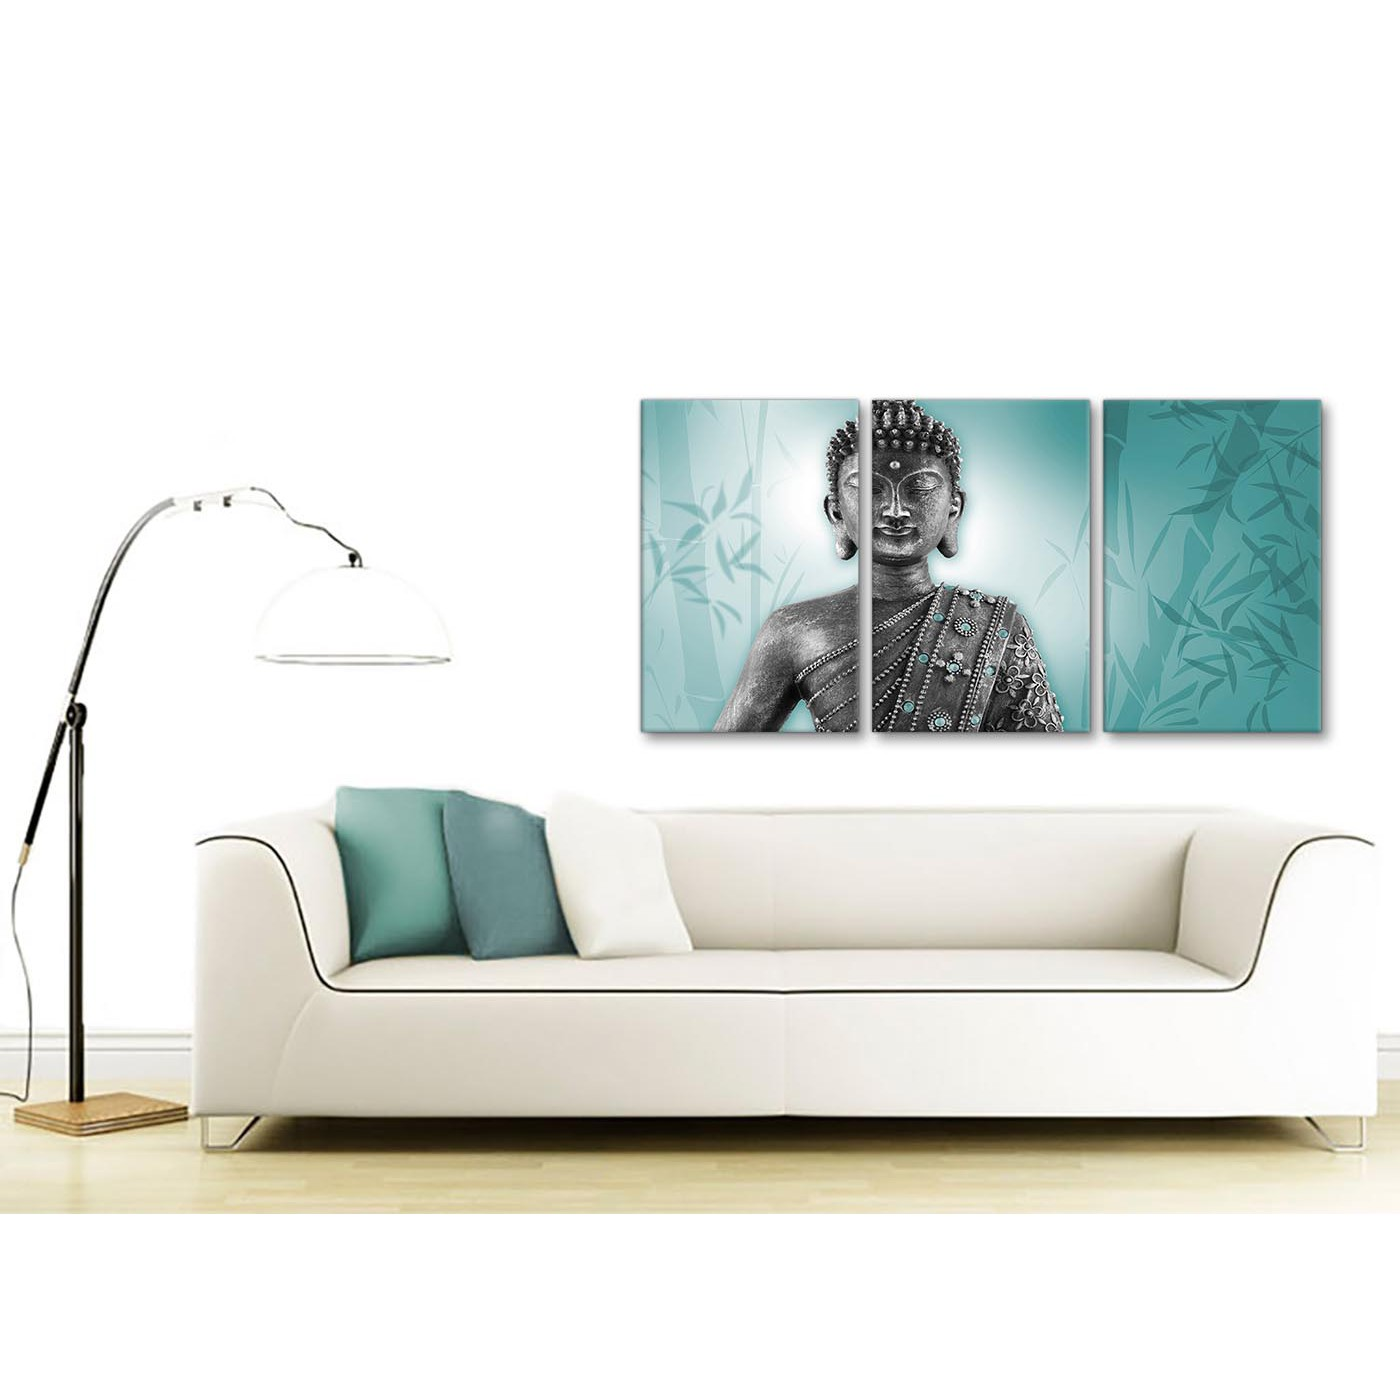 Teal and Grey Silver Canvas Art Prints of Buddha - Split Set of 3 - 3327